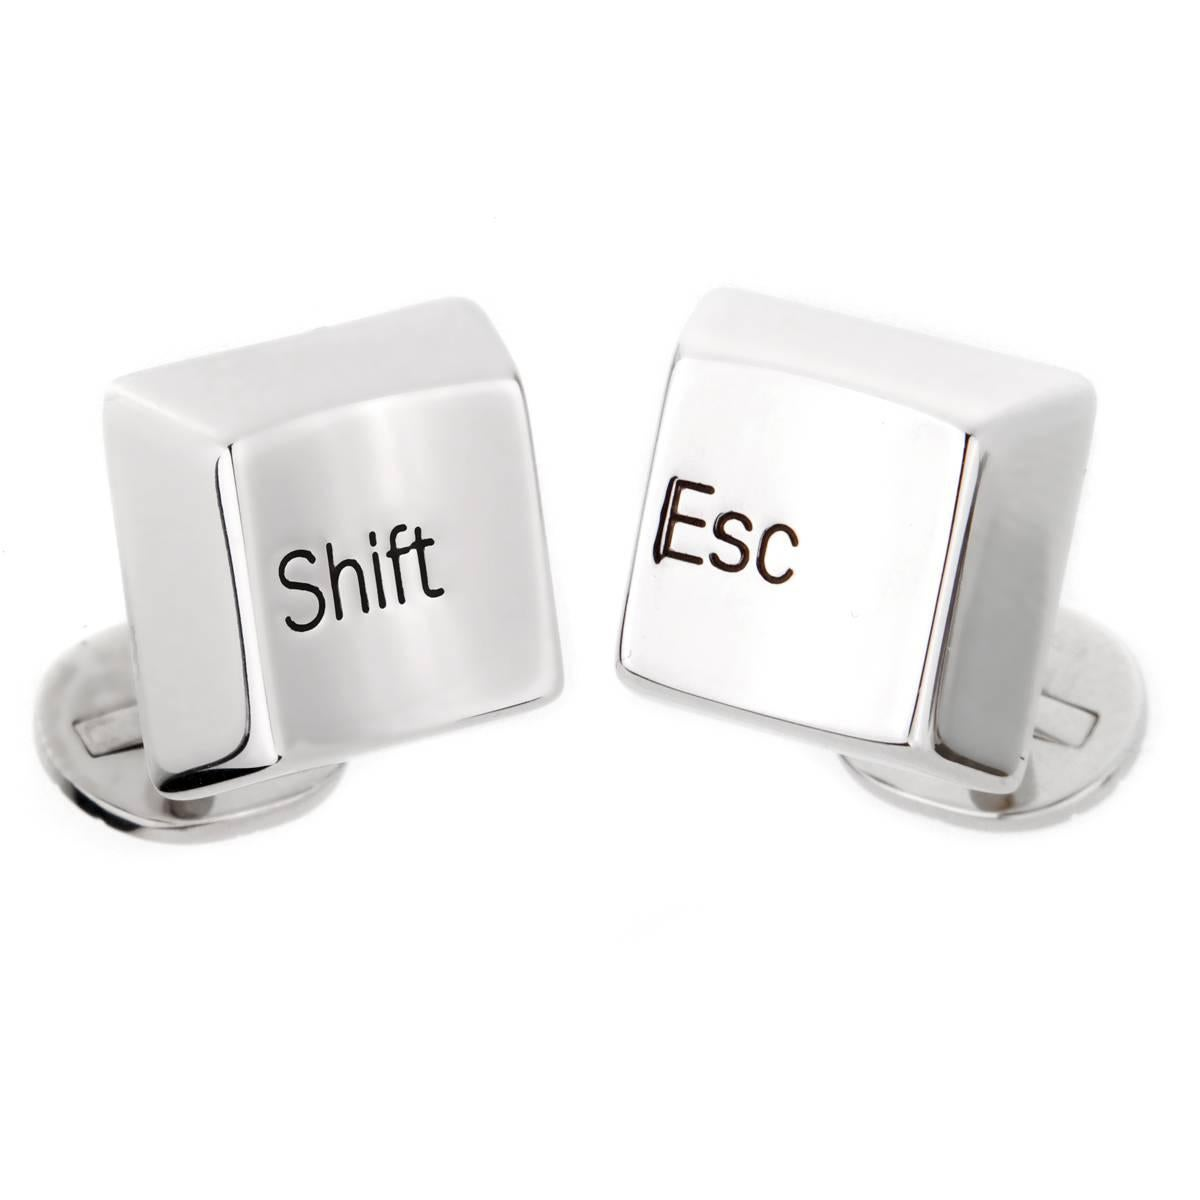 Cartier Shift Escape Keyboard Cufflinks